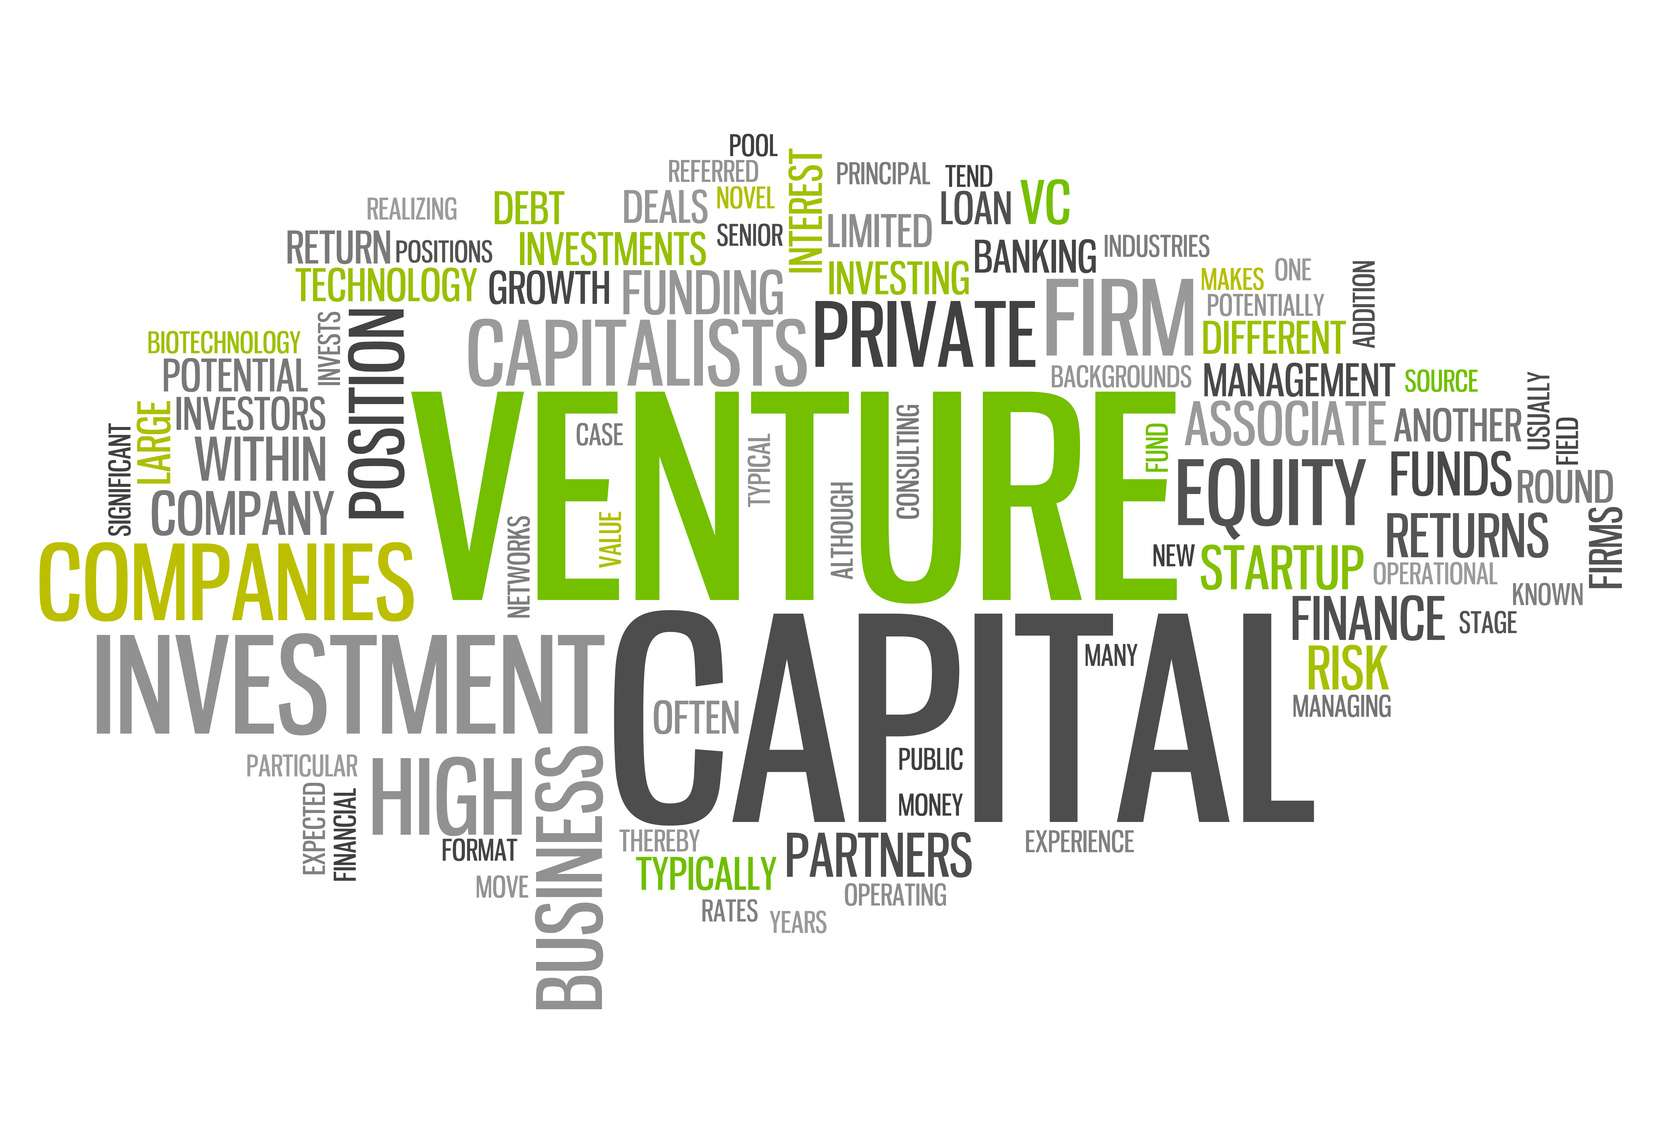 Jamaica Moves Up Private & Venture Capital Rankings